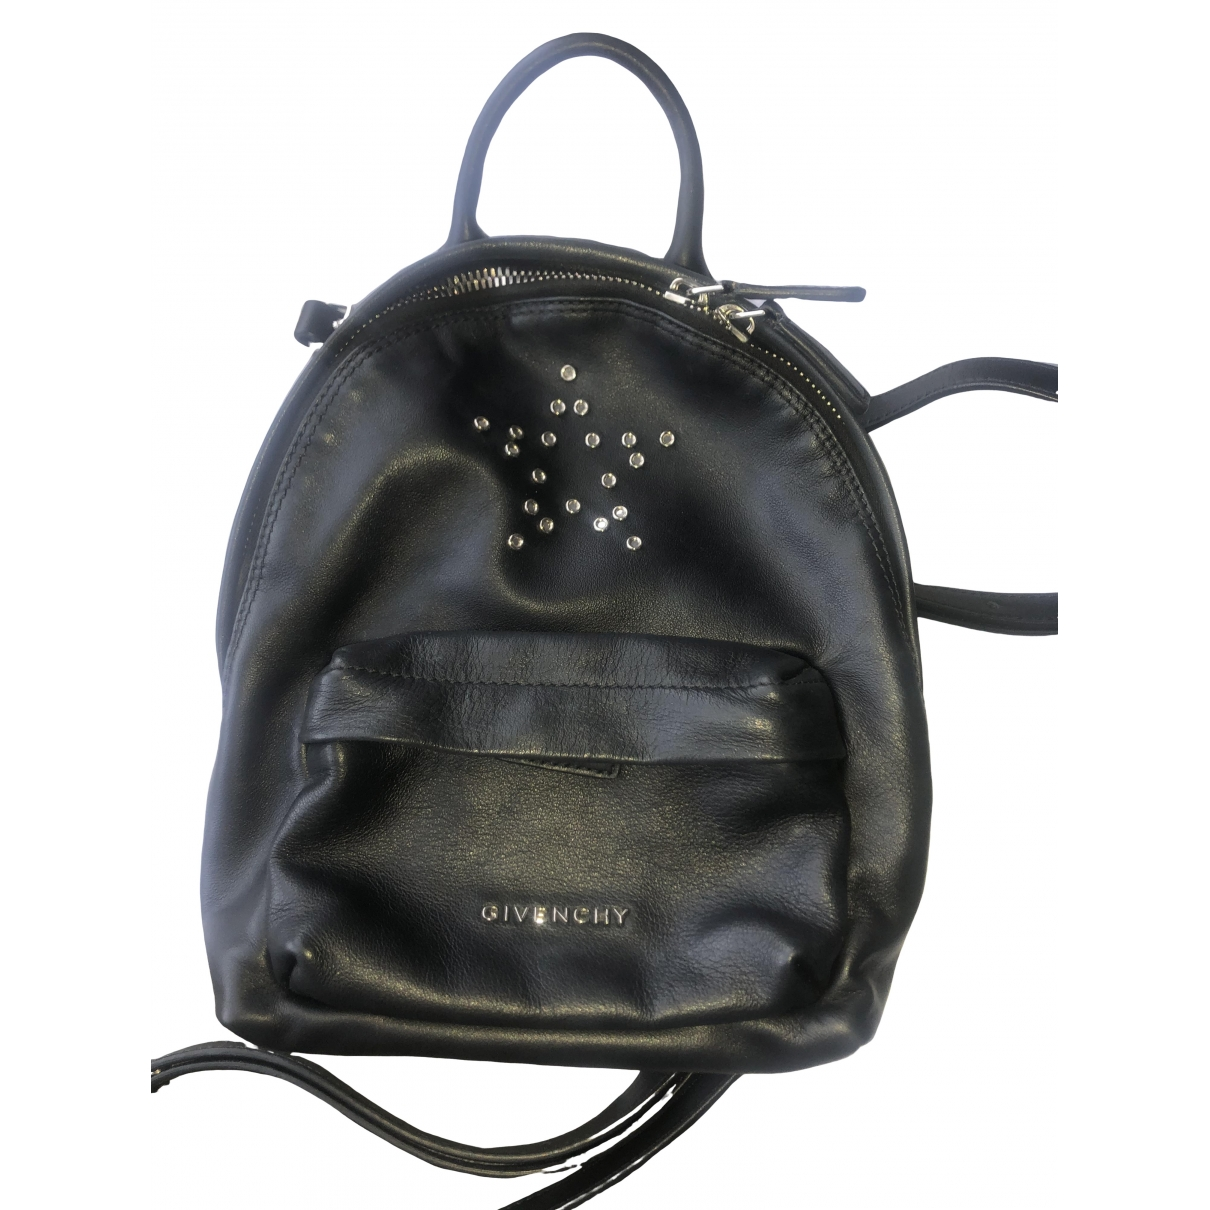 Givenchy \N Black Leather backpack for Women \N